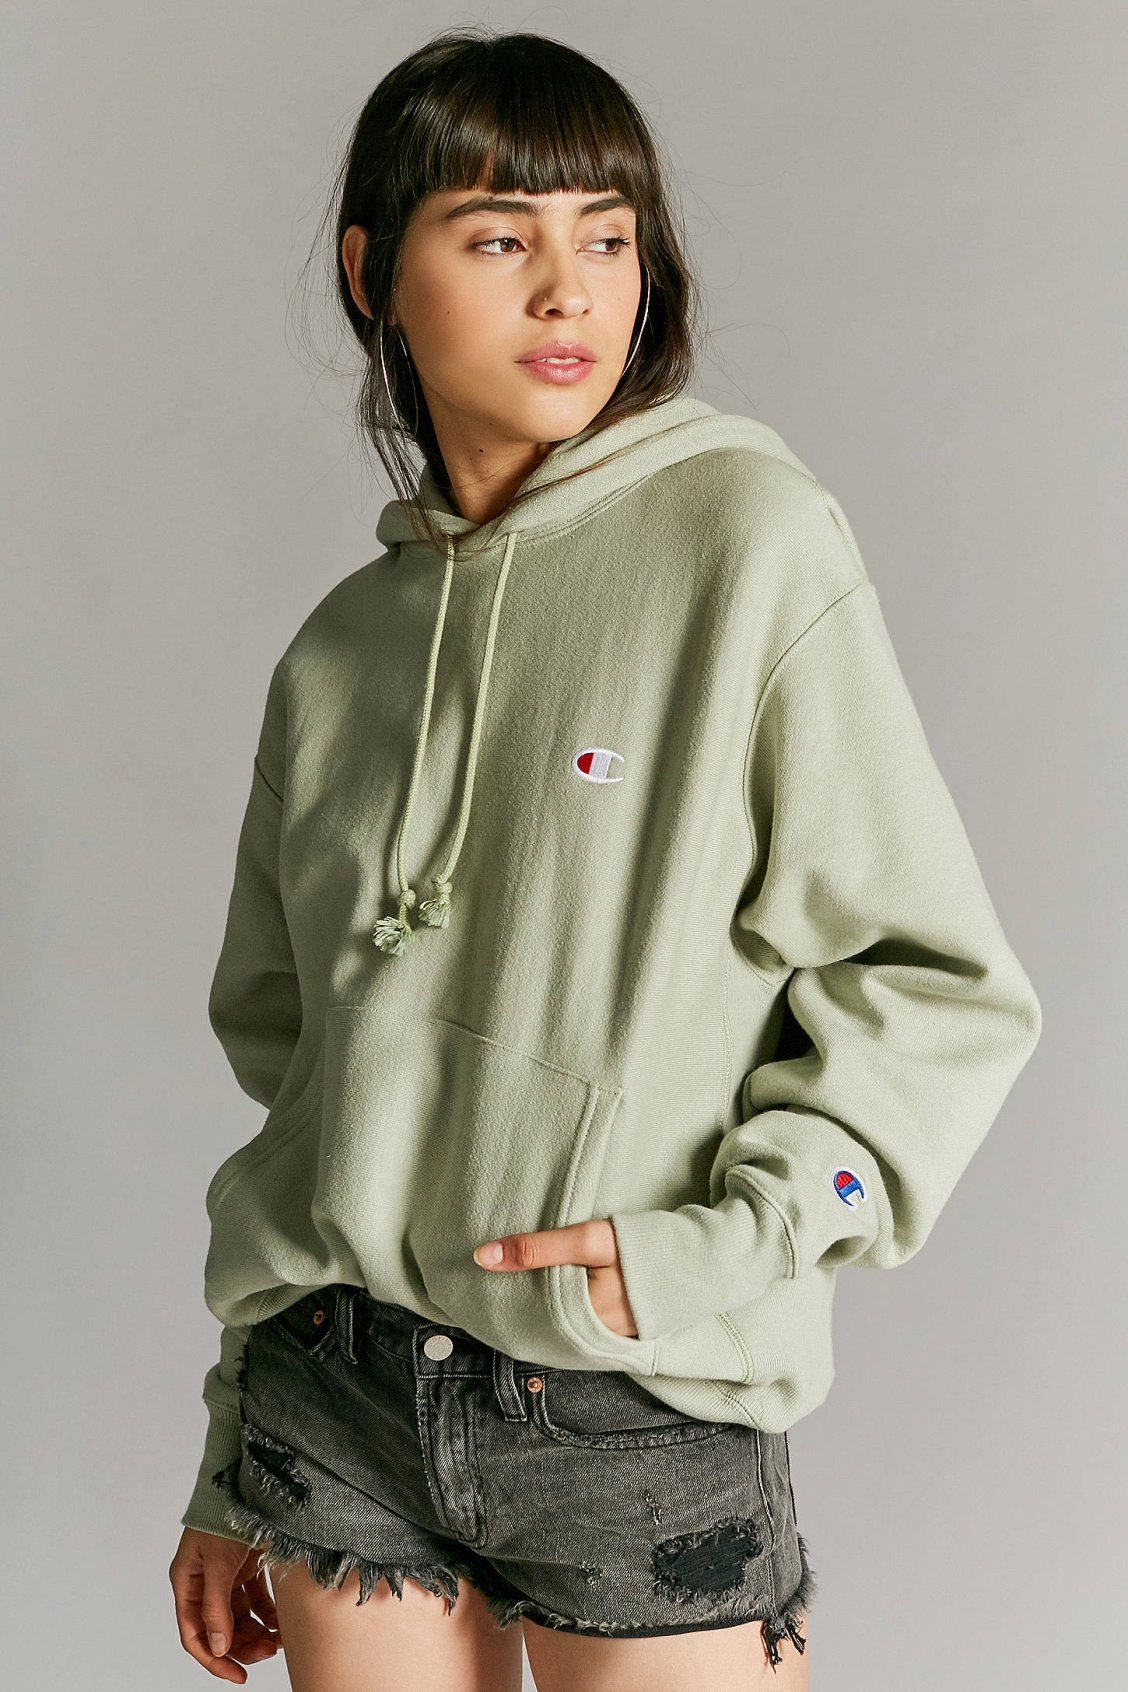 a15c765d1c10 Champion & UO Novelty Graphic Hoodie Sweatshirt | Urban Outfitters